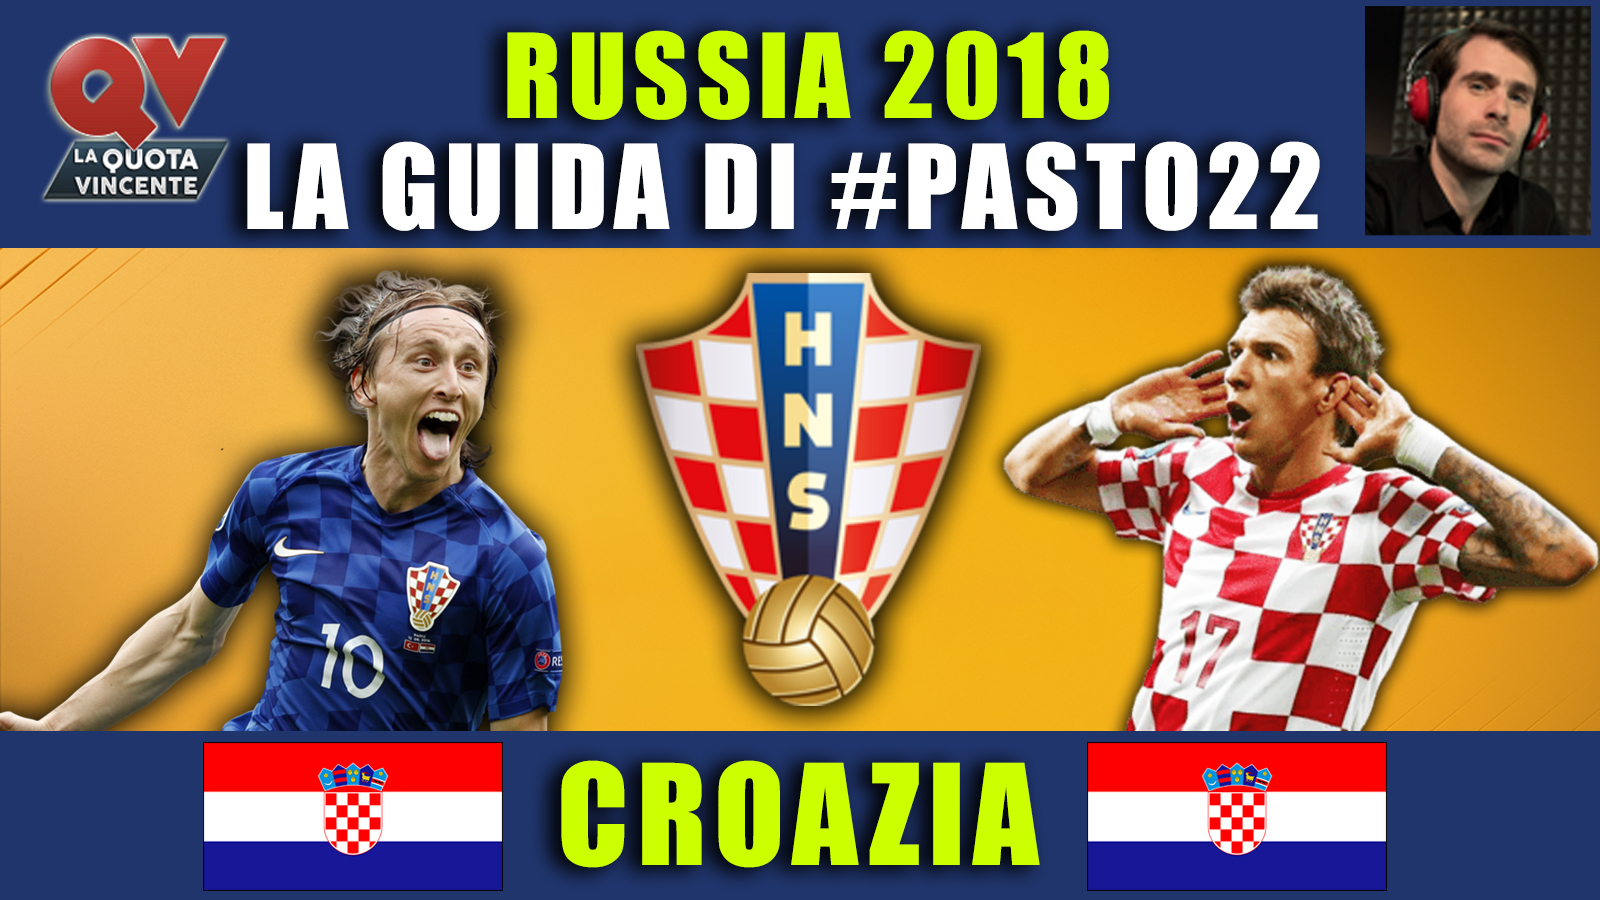 https://www.laquotavincente.it/guida-mondiali-russia-2018-croazia/